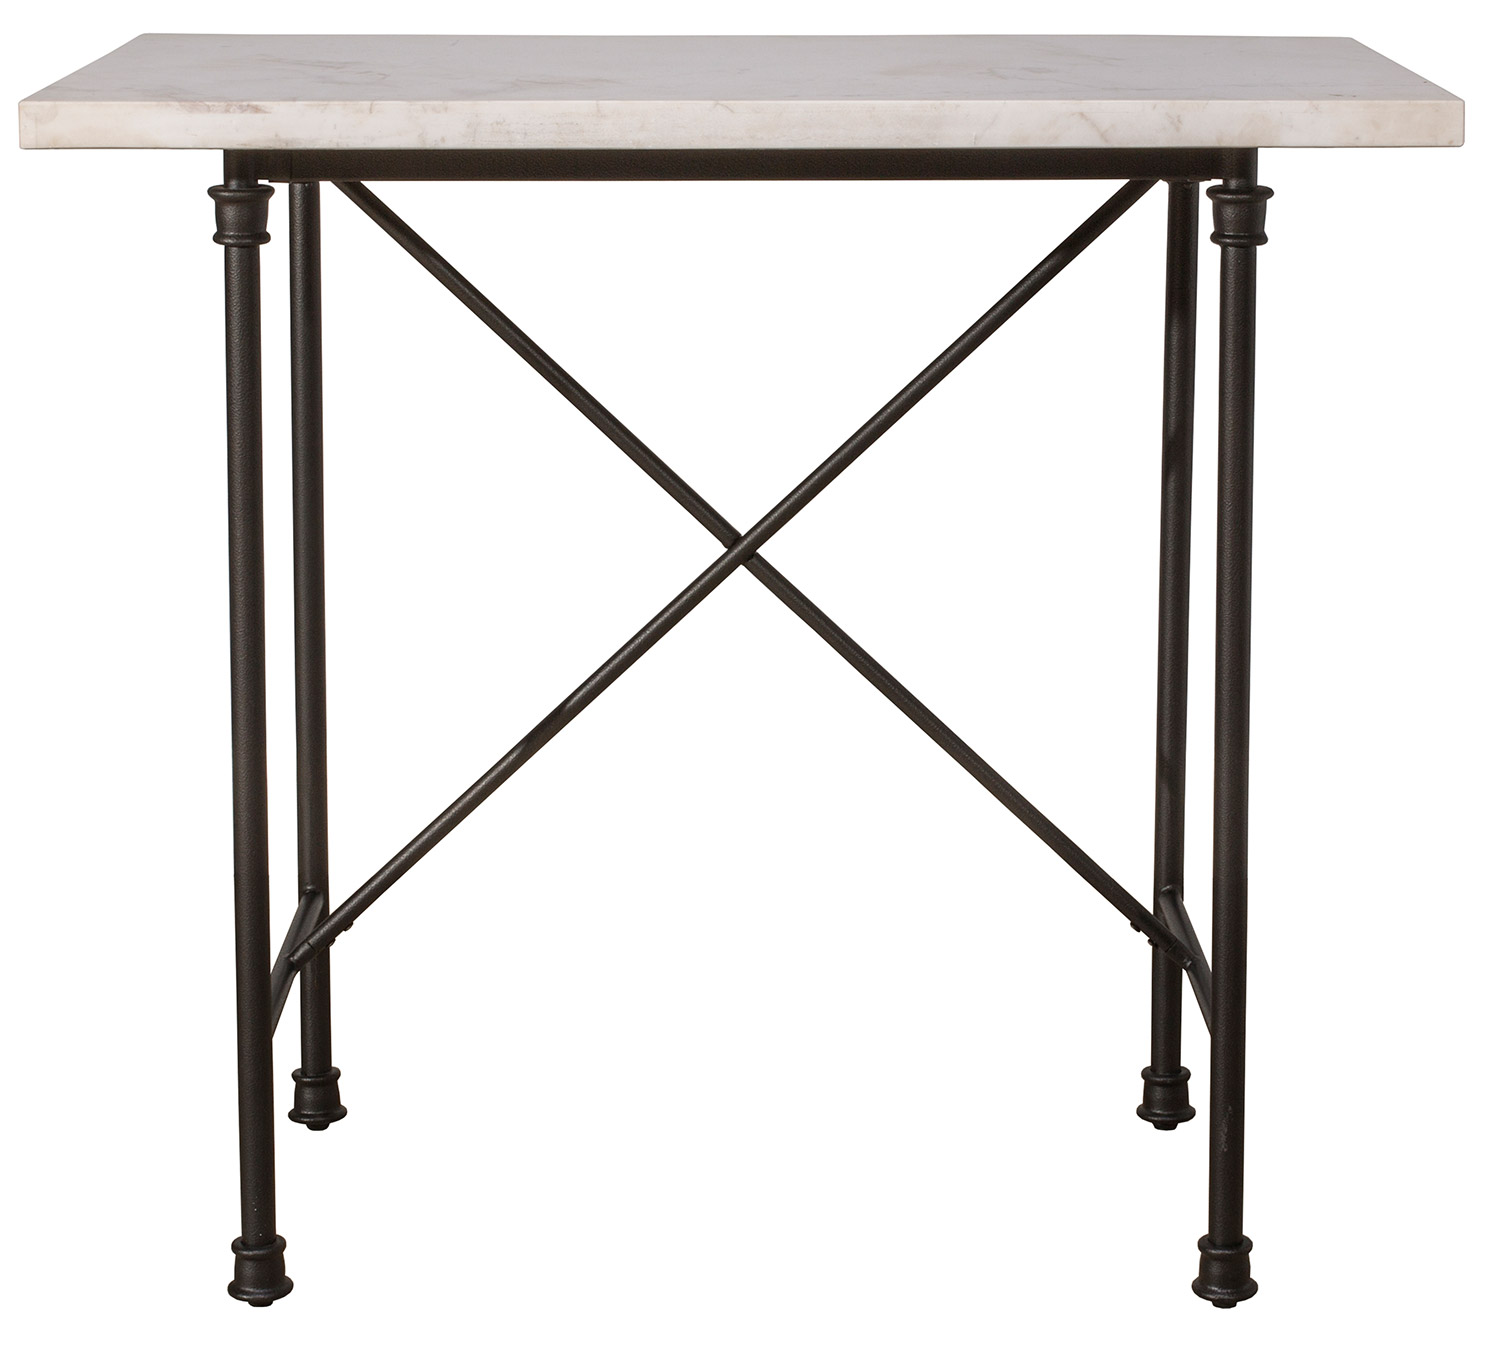 Hillsdale Castille Counter Height Table - Black/White